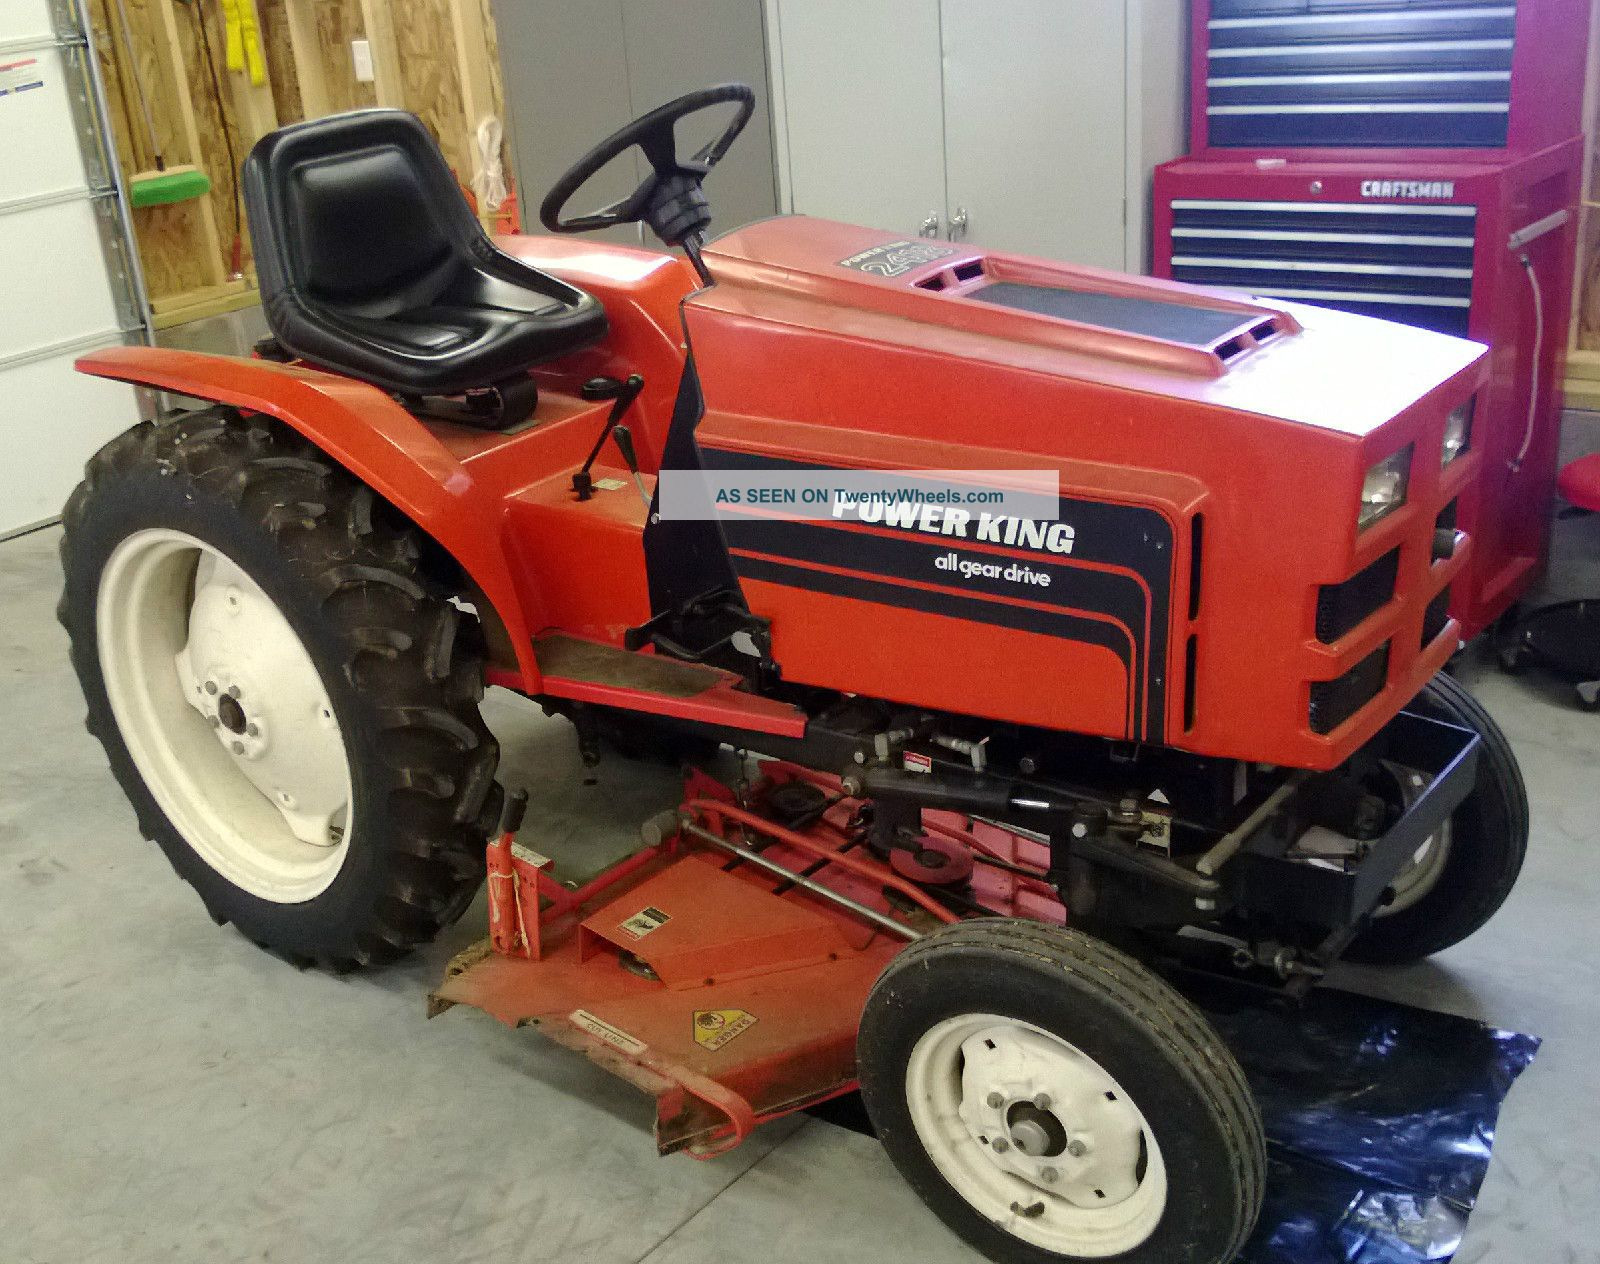 2418 Power King Lawn Tractor With Kohler Engine Absolute Antique ...